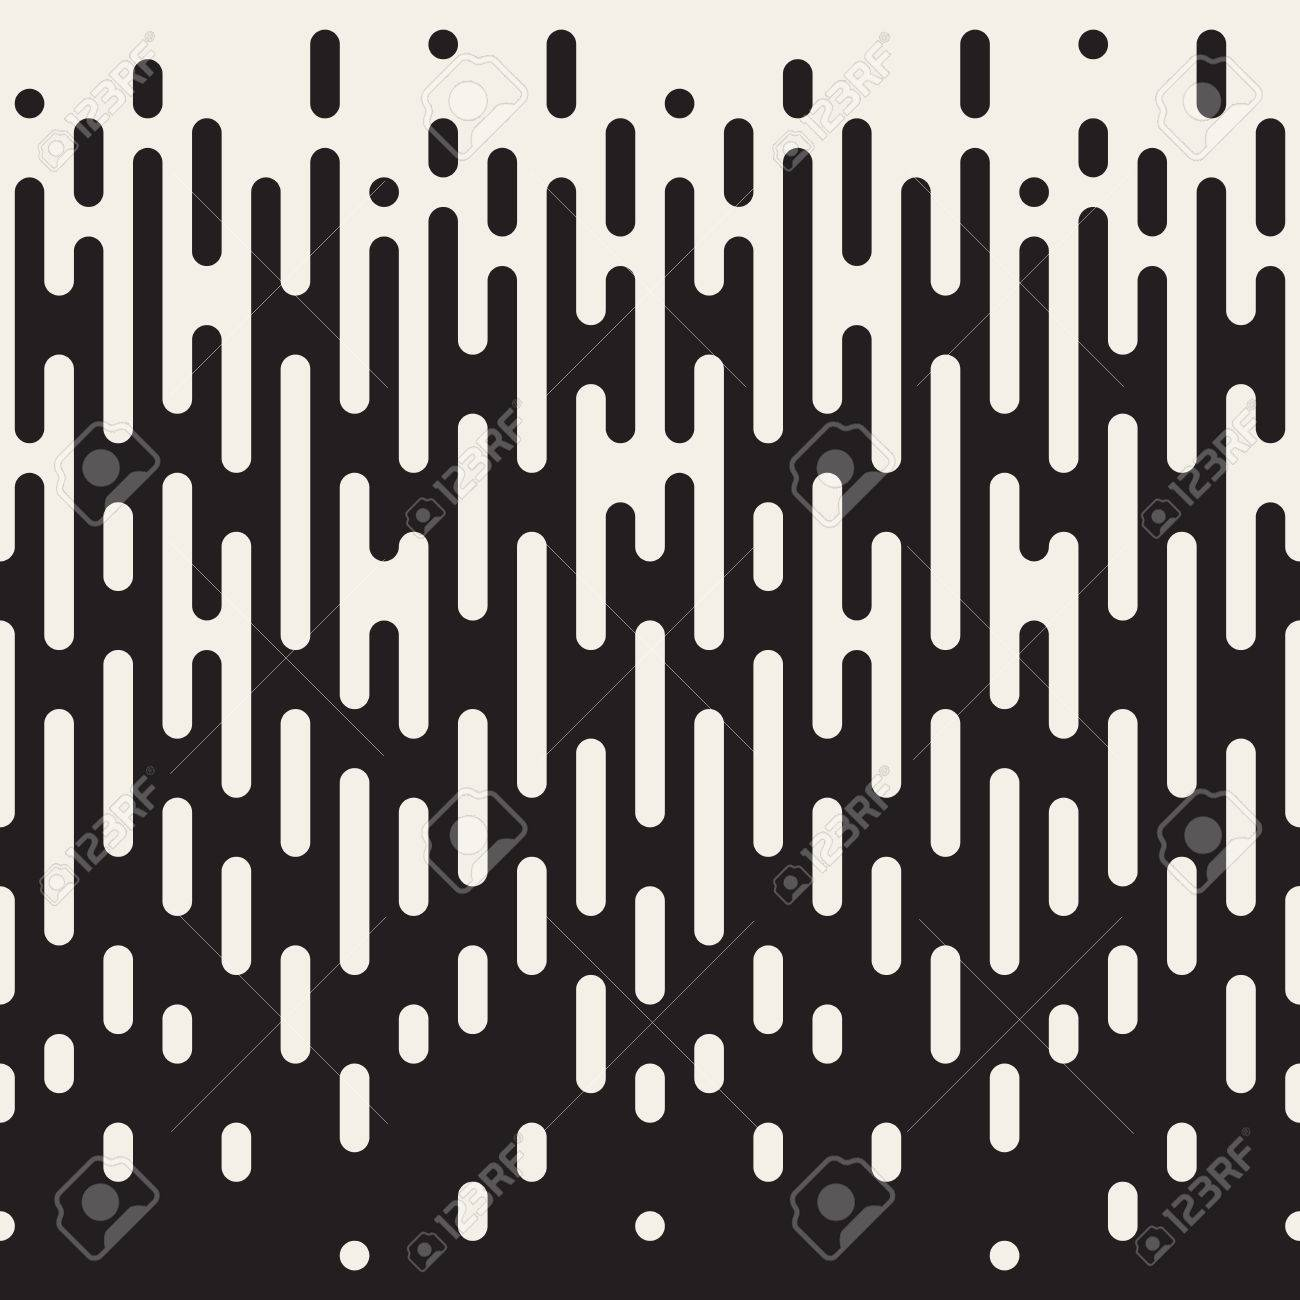 Seamless Black And White Irregular Rounded Lines Halftone Transition Abstract Background Pattern - 52579590